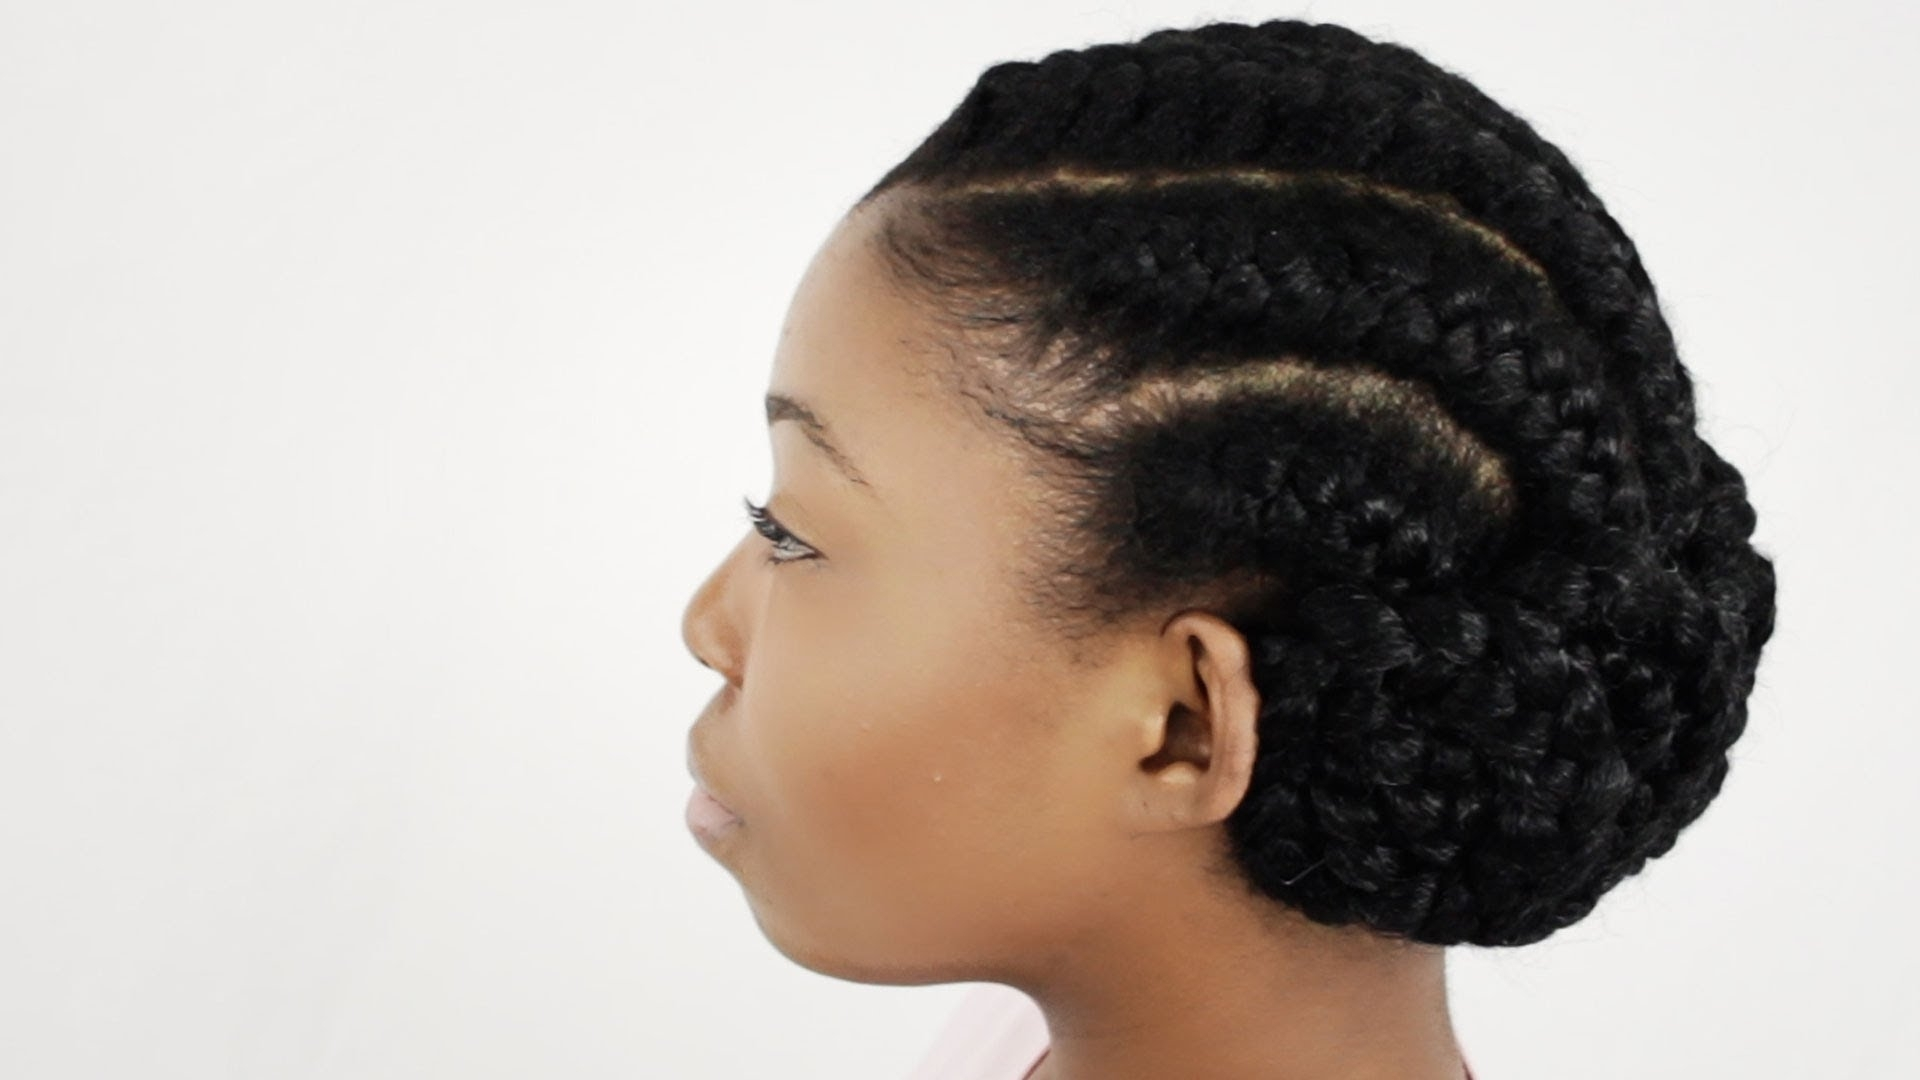 Adorable Quick Braided Hairstyles For Black Women For Natural Within Most Current Quick Braided Hairstyles For Natural Hair (View 4 of 15)